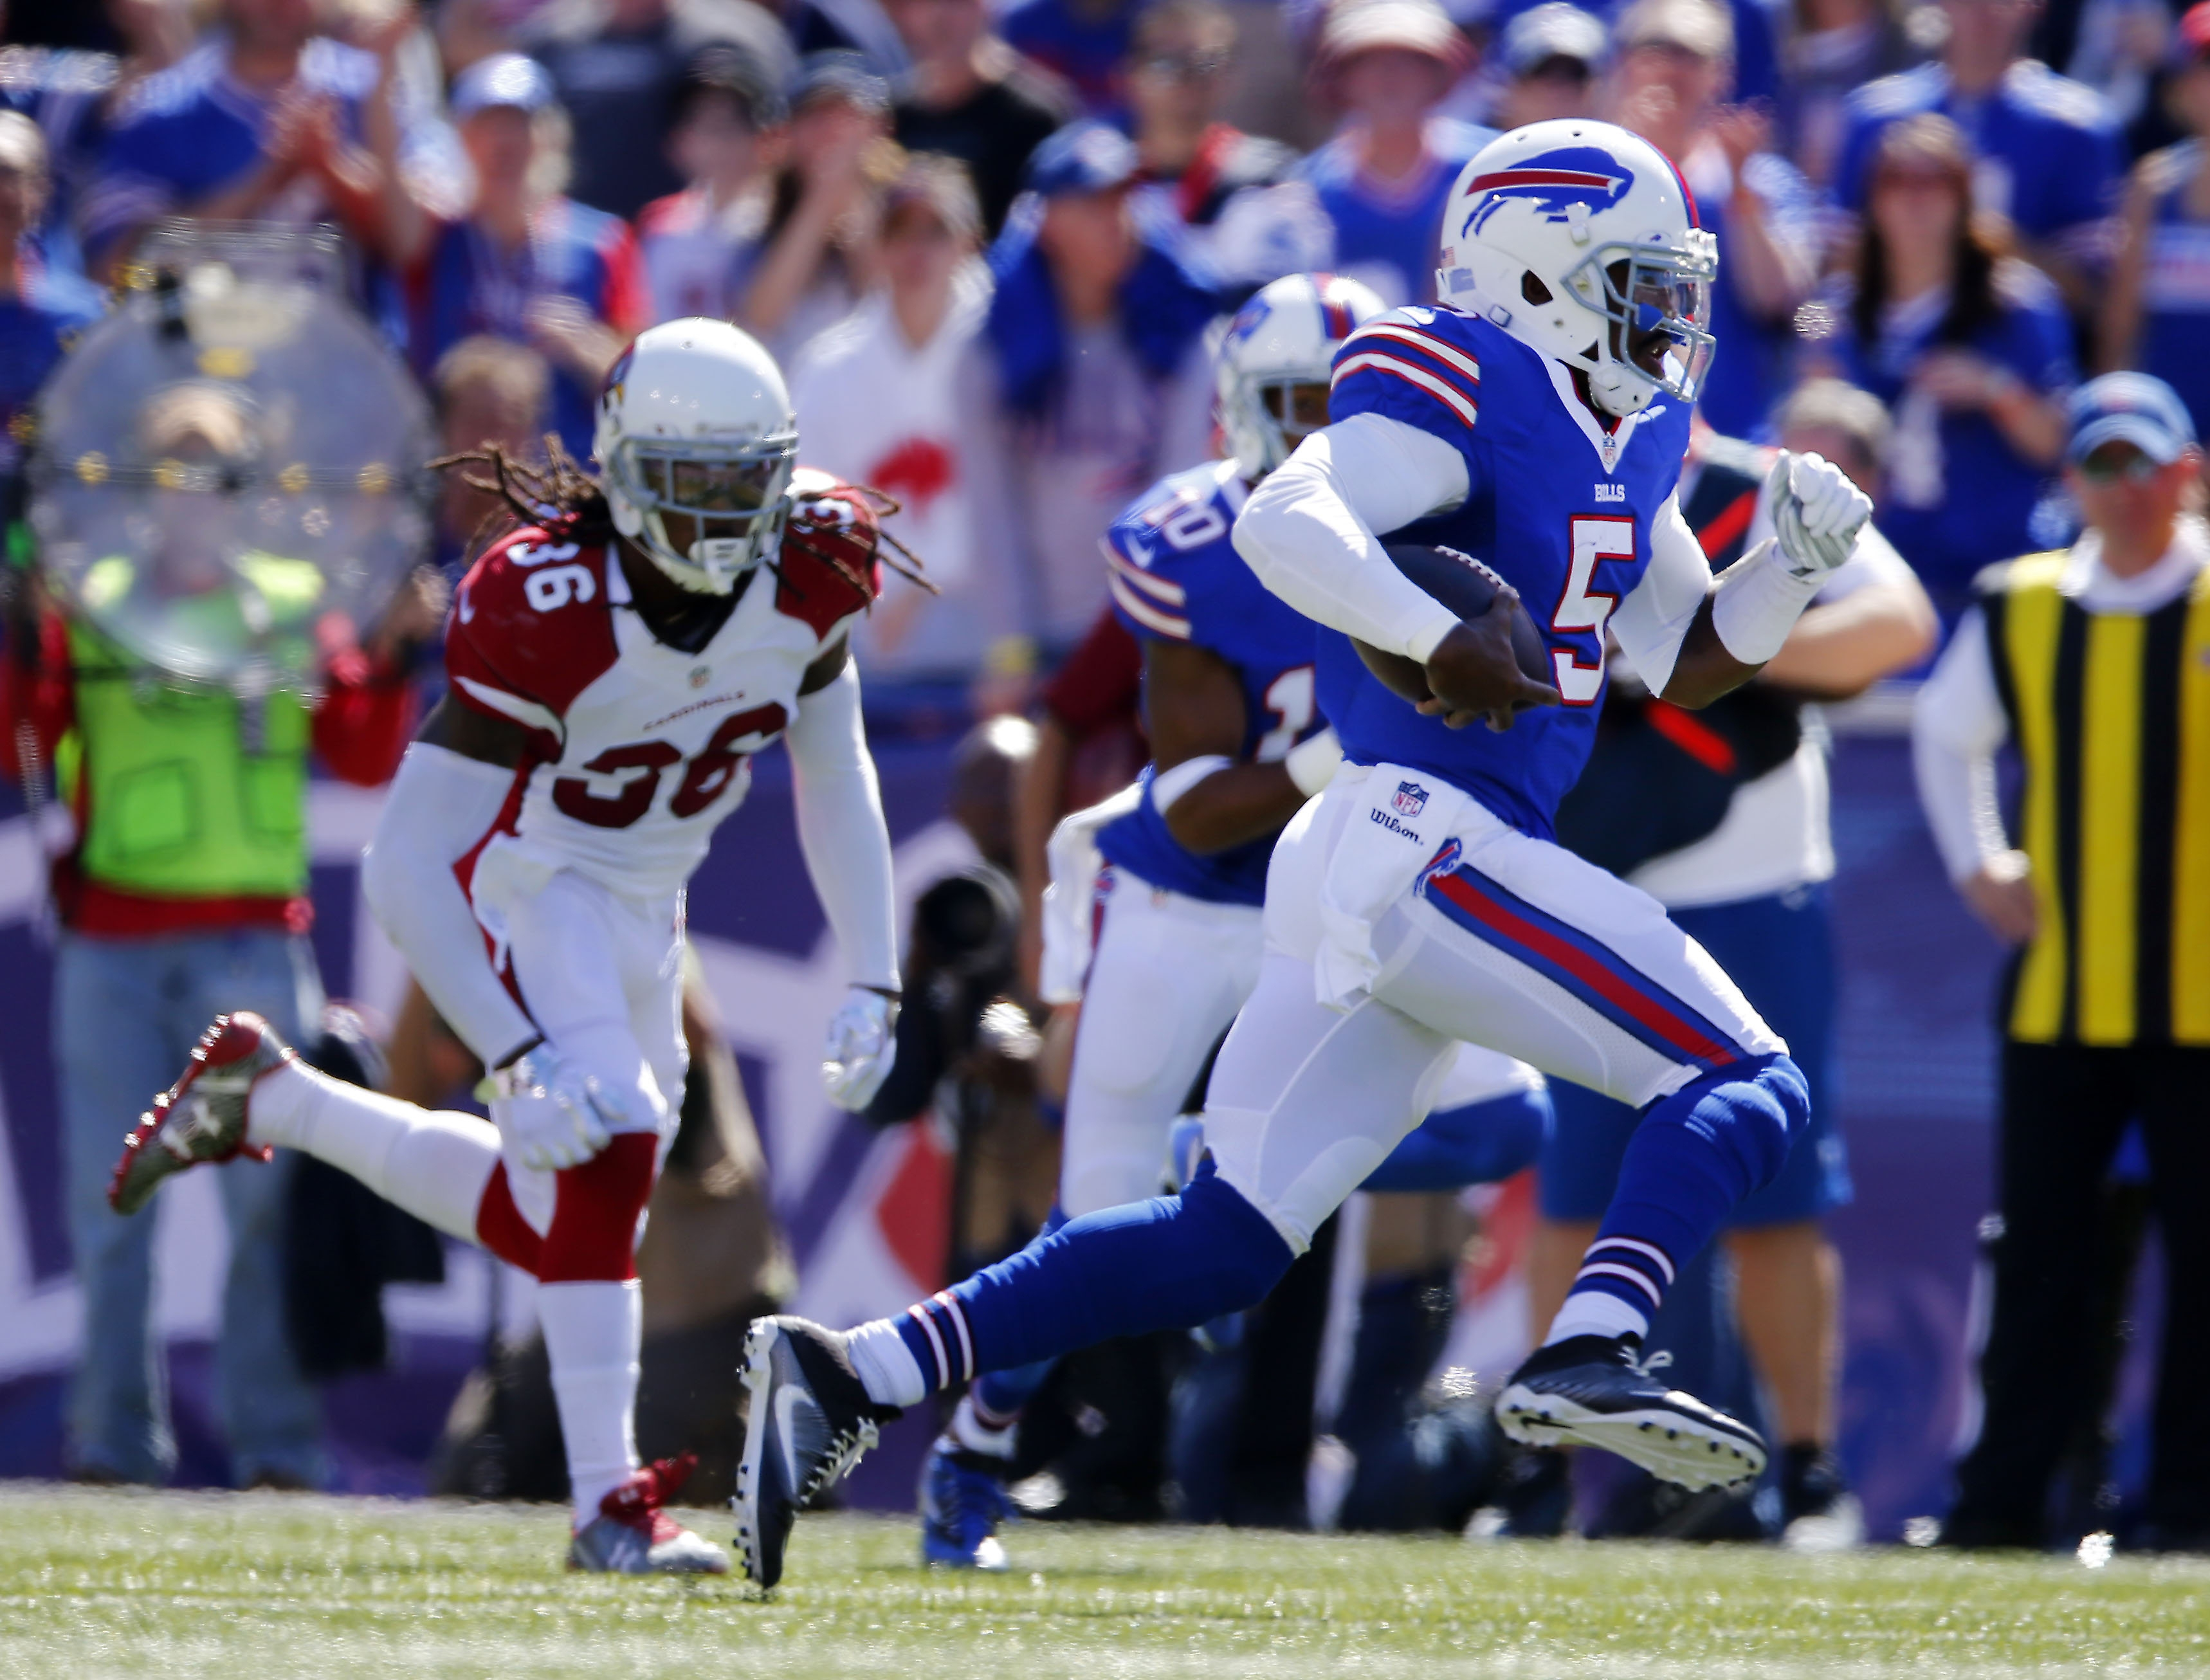 Bills quarterback Tyrod Taylor takes off on a 49-yard run Sunday in the first quarter at New Era Field. The read-option play resulted in a record run for a Bills quarterback.